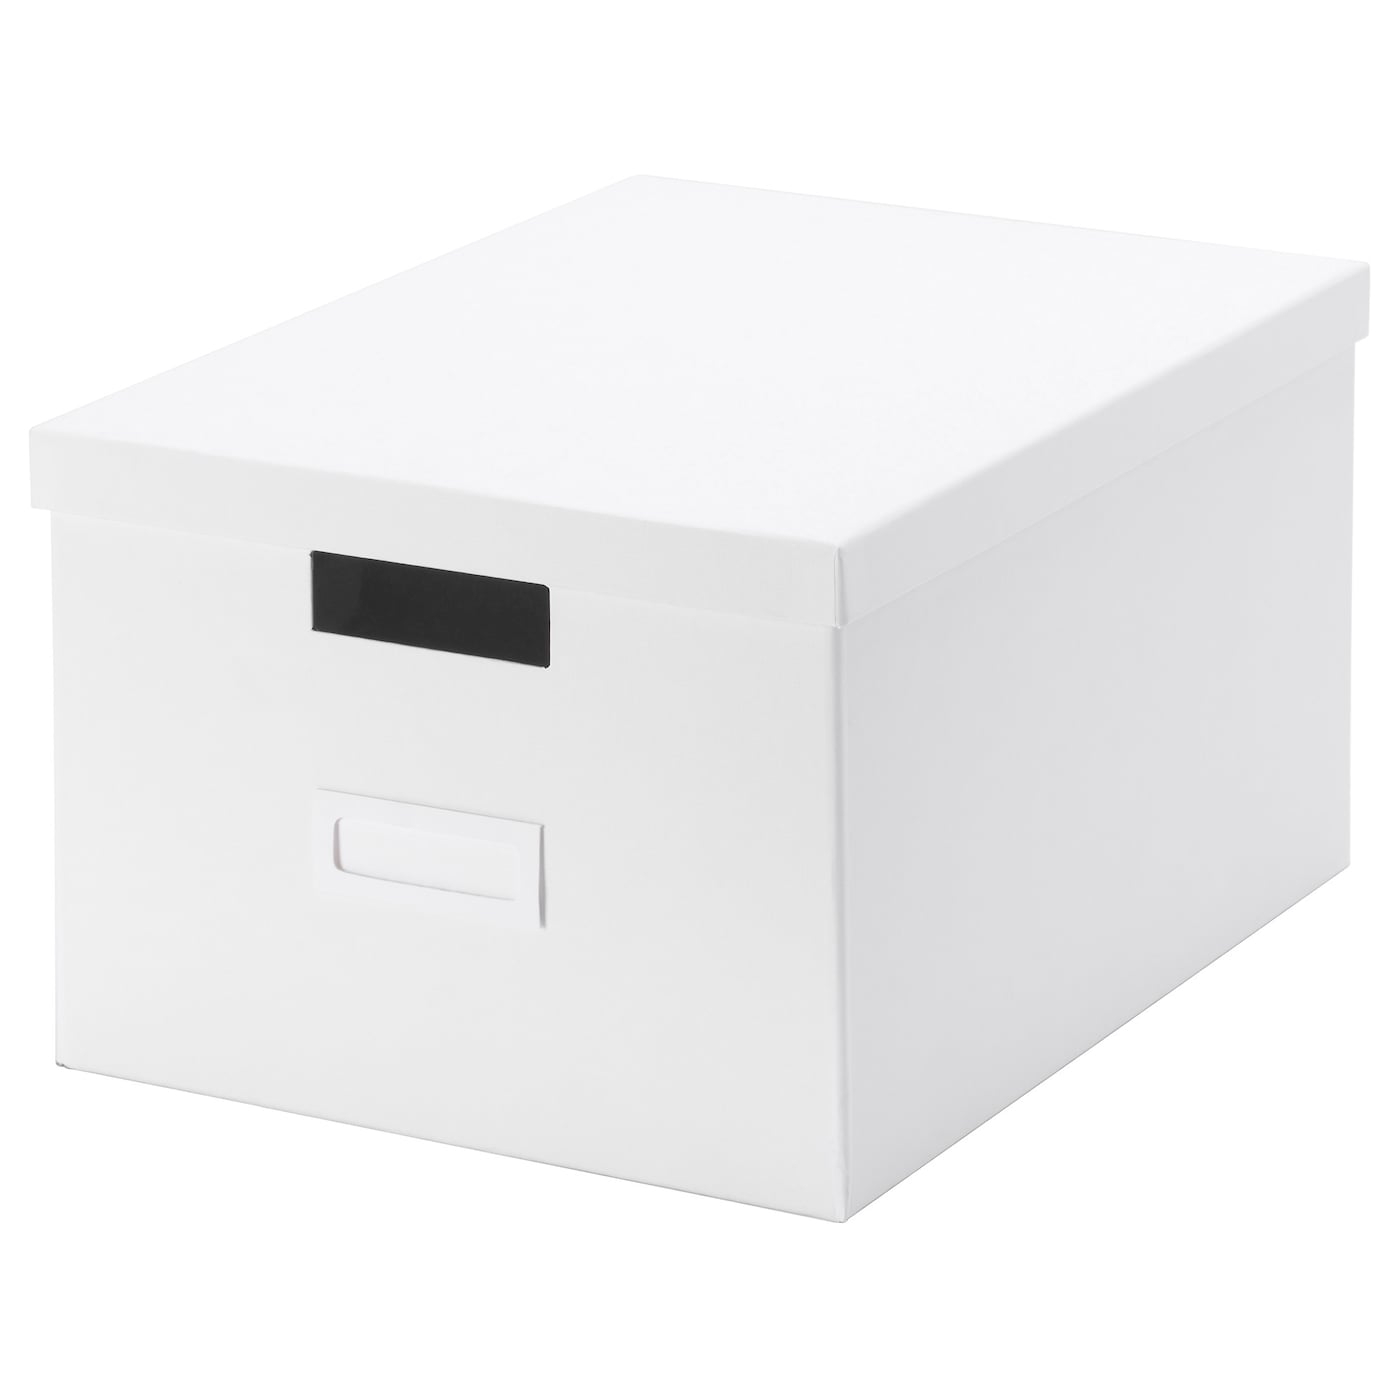 IKEA TJENA box with lid Perfect for papers, photos or other memorabilia